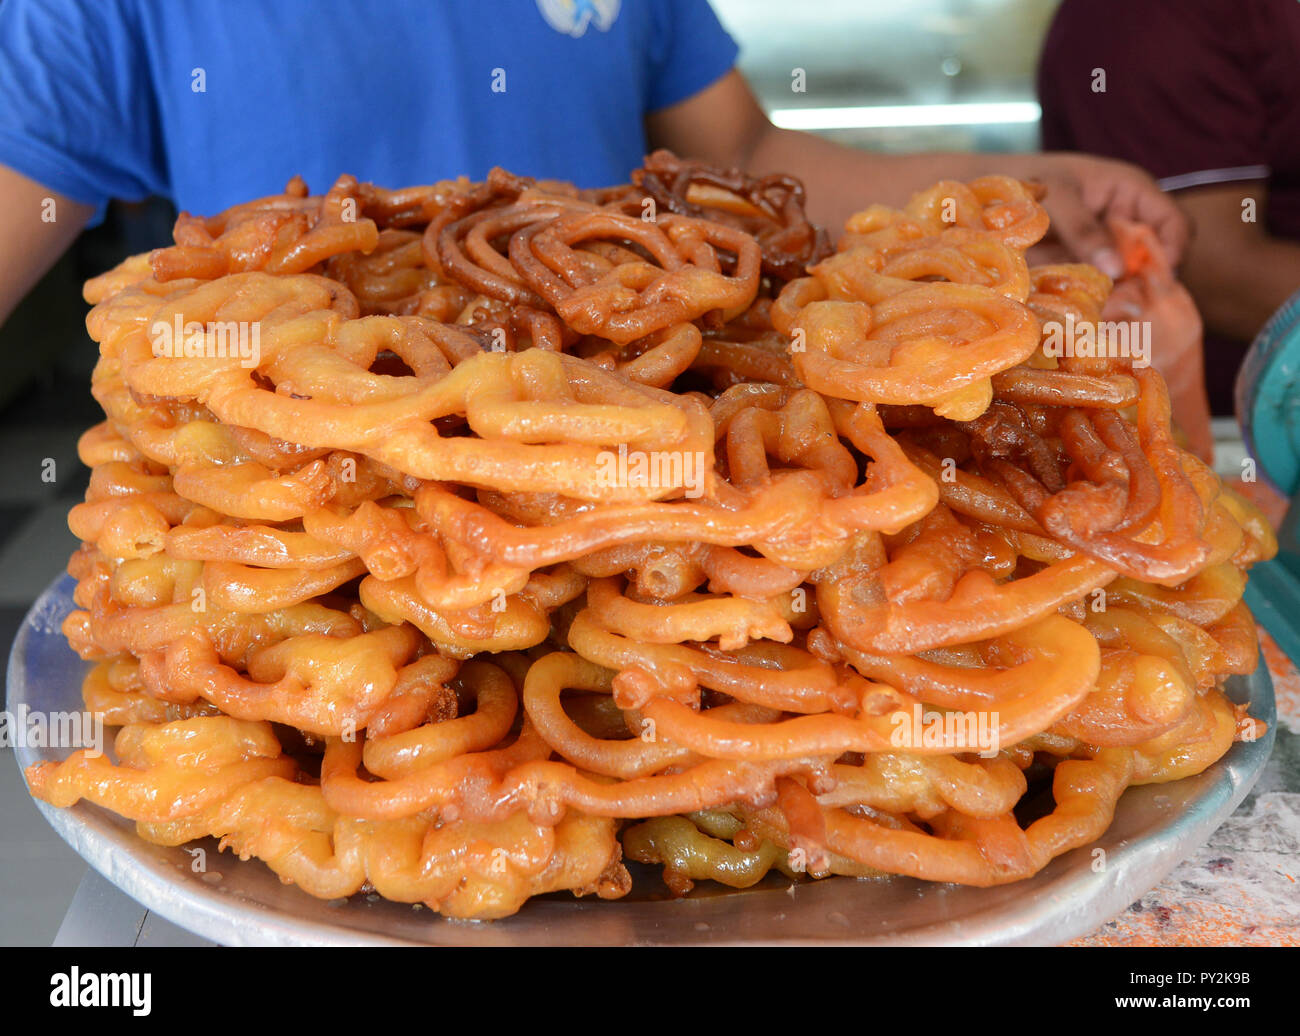 Sweet Jalebi sold in an Indian sweet shop in KL, Malaysia. - Stock Image